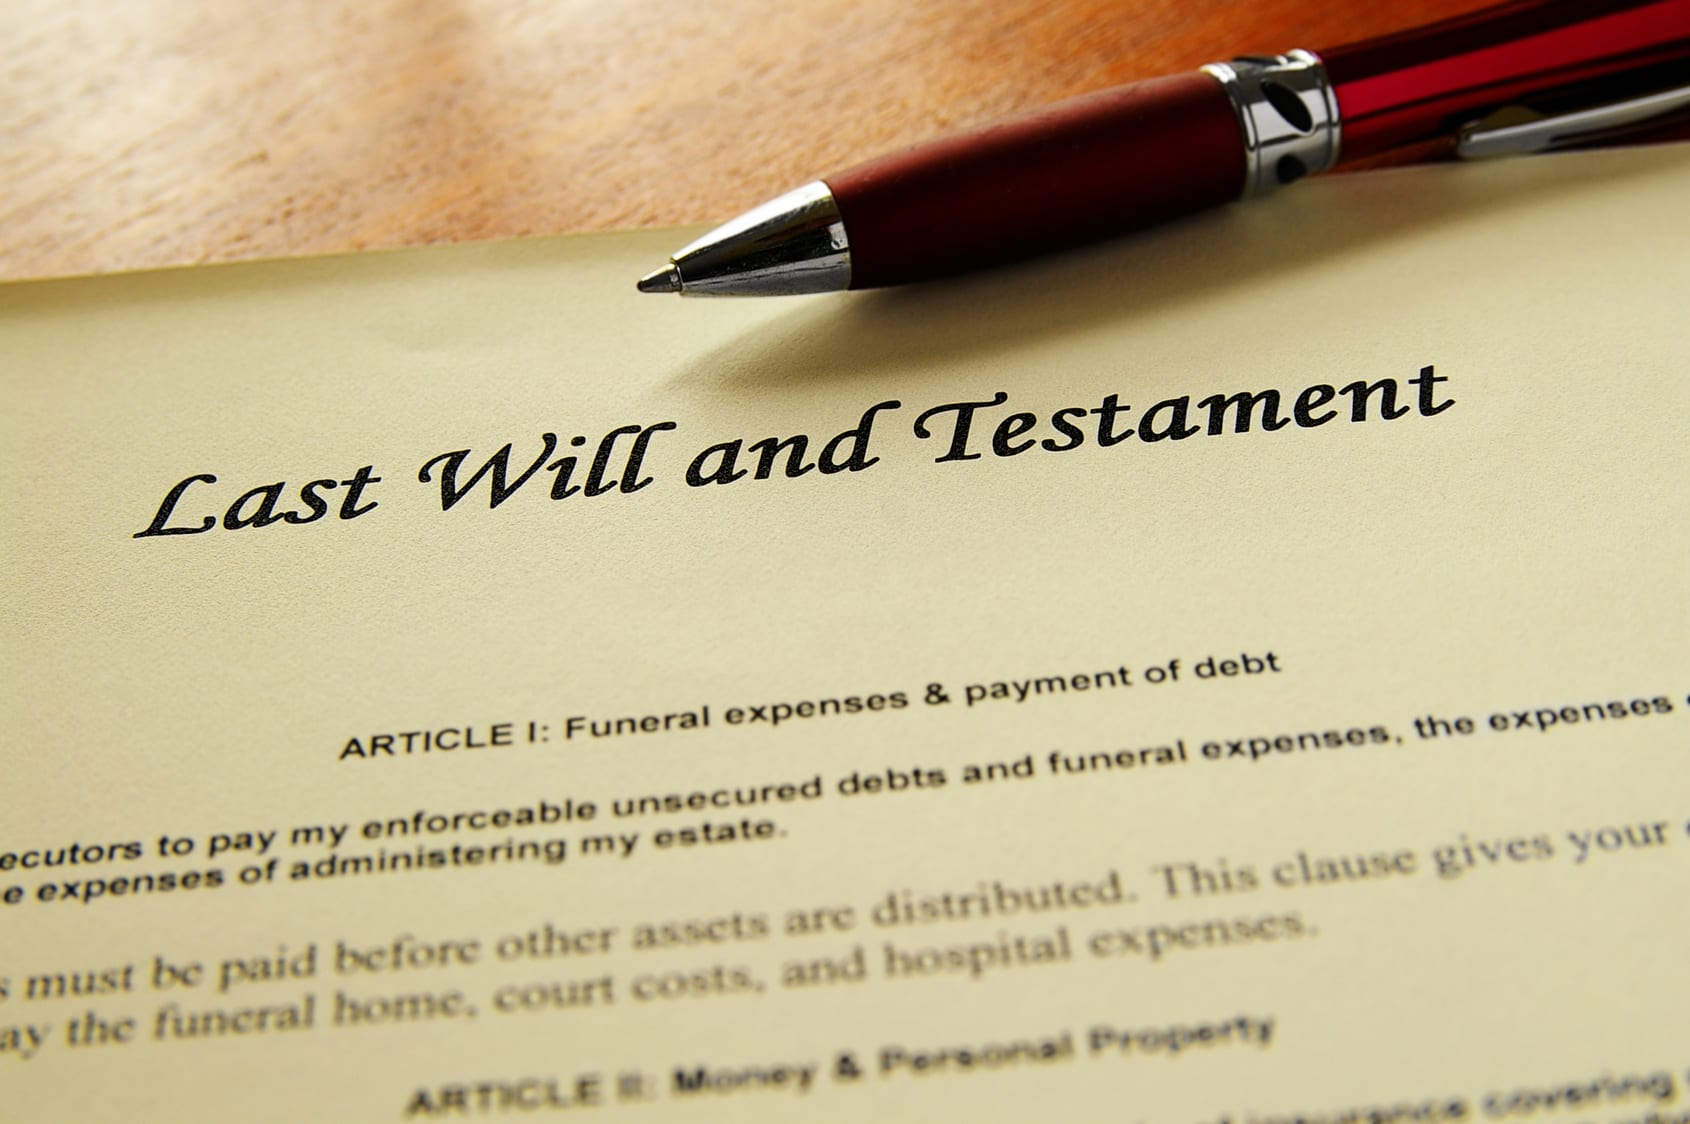 COMPLETE WILL PACKAGE <br/> Donated by: BHATT LAW FIRM <br/> Valued at: $500